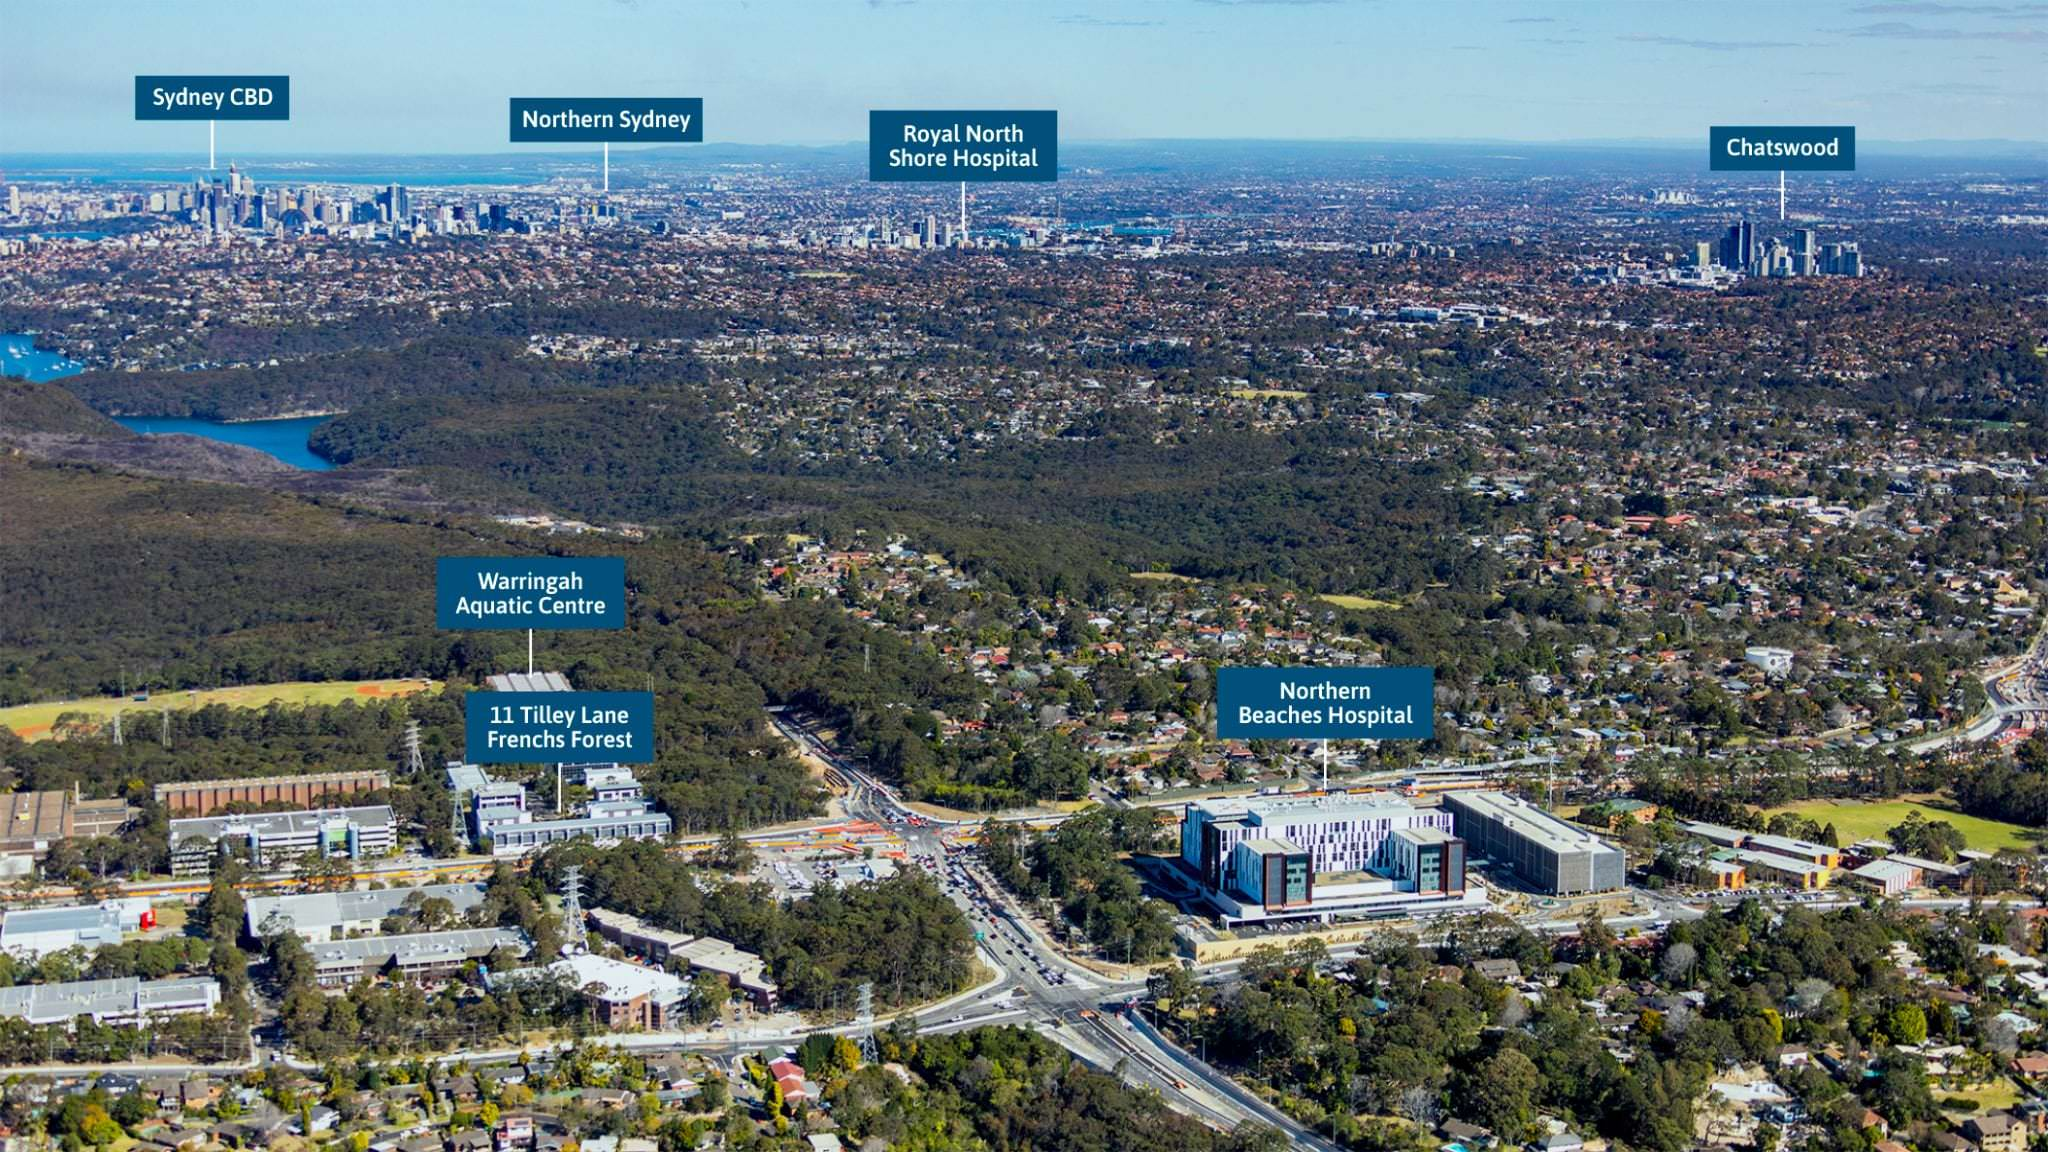 northern beaches frenchs forest location view to sydney